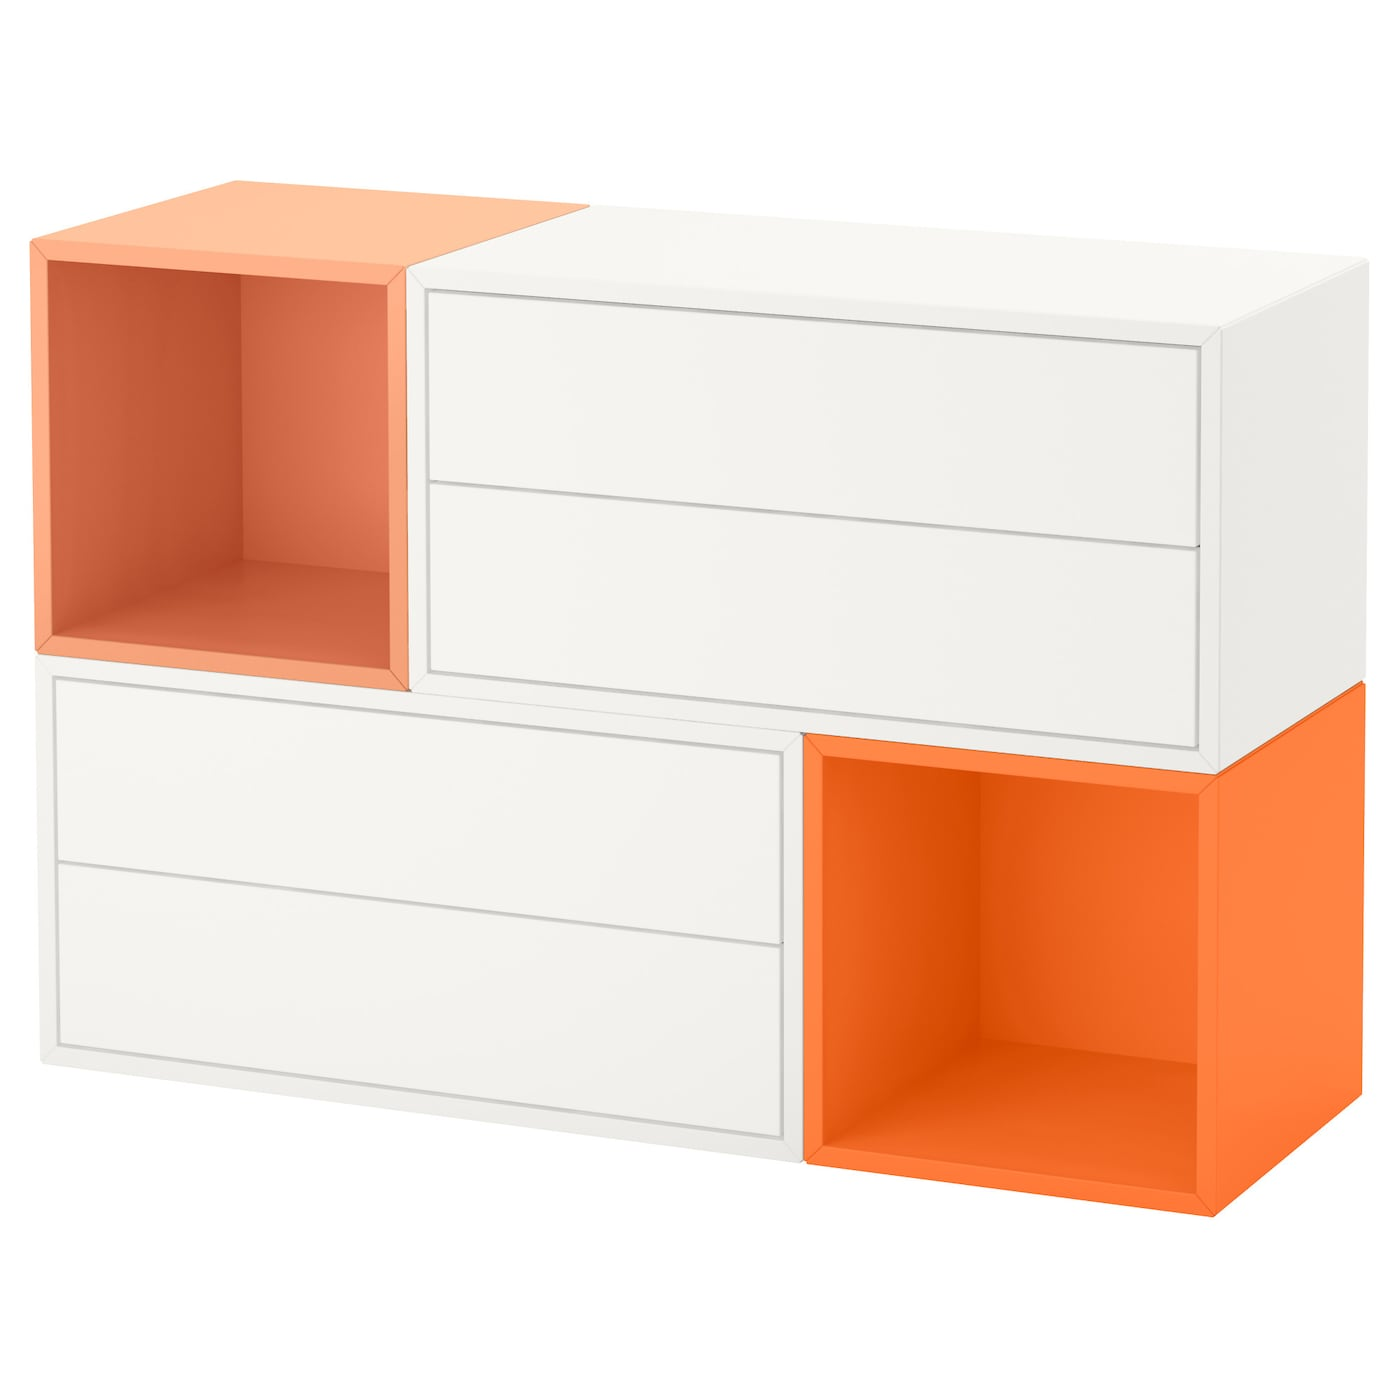 eket wall mounted cabinet combination white orange light. Black Bedroom Furniture Sets. Home Design Ideas